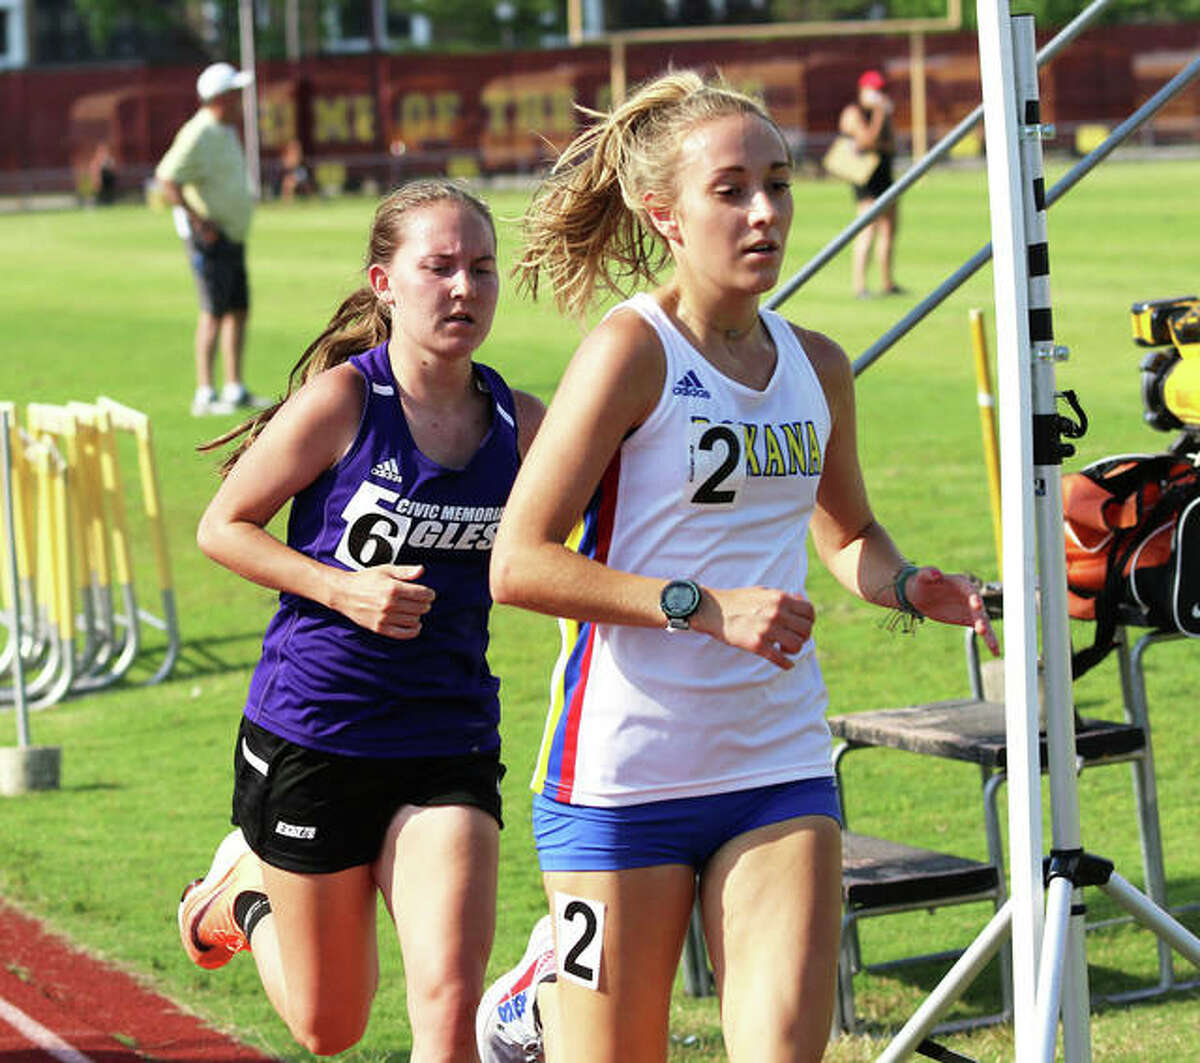 Roxana's Janelynn Wirth (right) leads CM's Hannah Meiser with 800 meters left in the 3,200 at the Class 2A sectional girls track meet Friday in Wood River. Wirth ran second, with Meiser 13 second back in third.